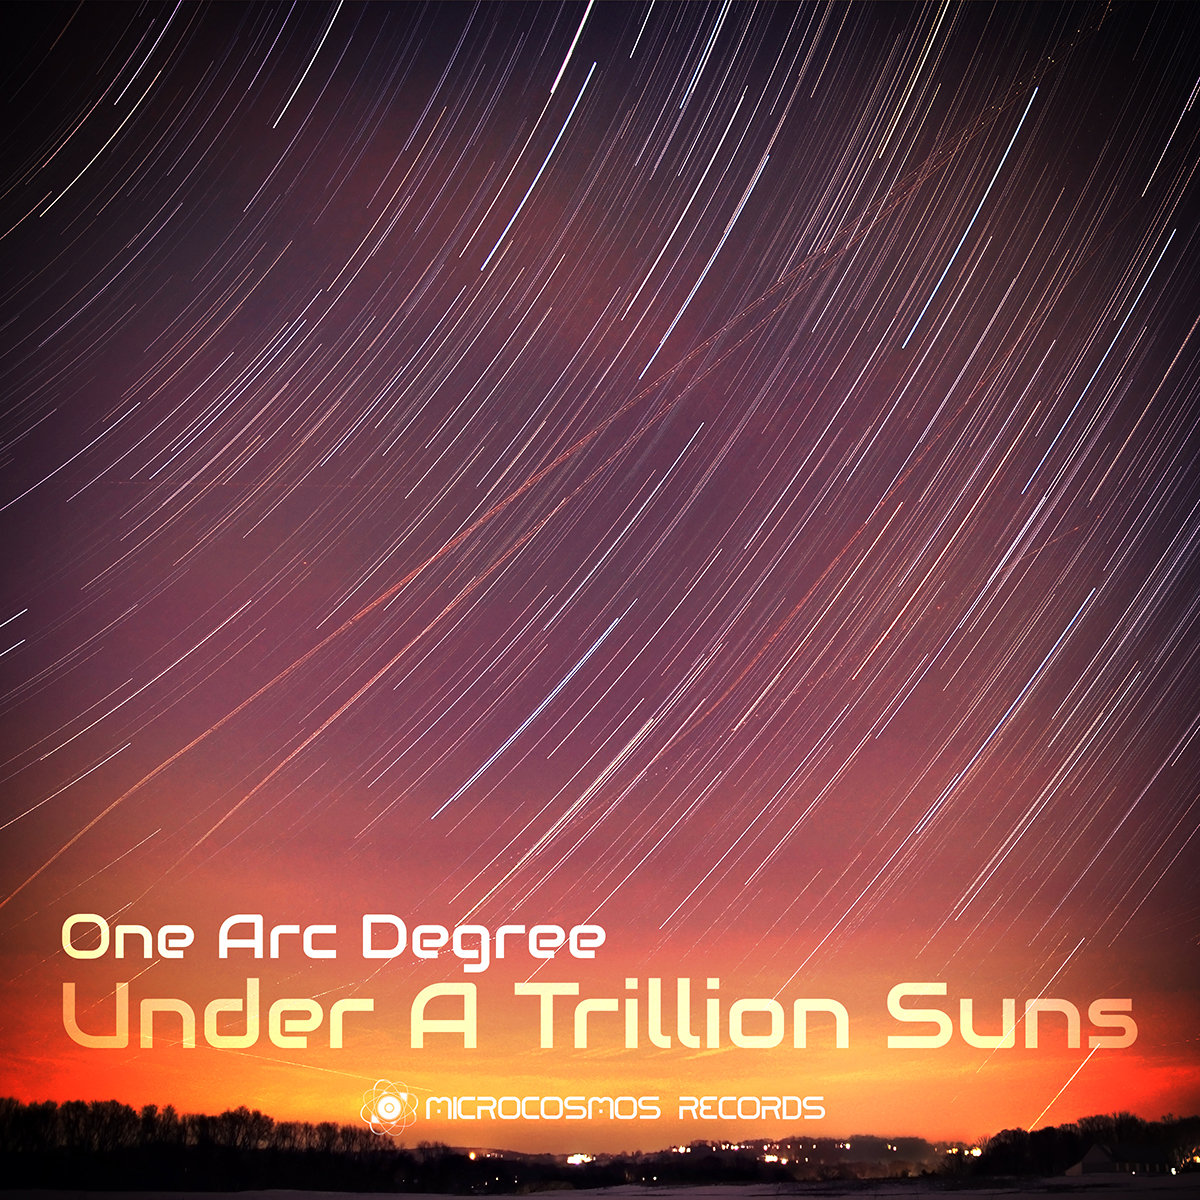 One Arc Degree - Futurism @ 'Under A Trillion Suns' album (ambient, chill-out)